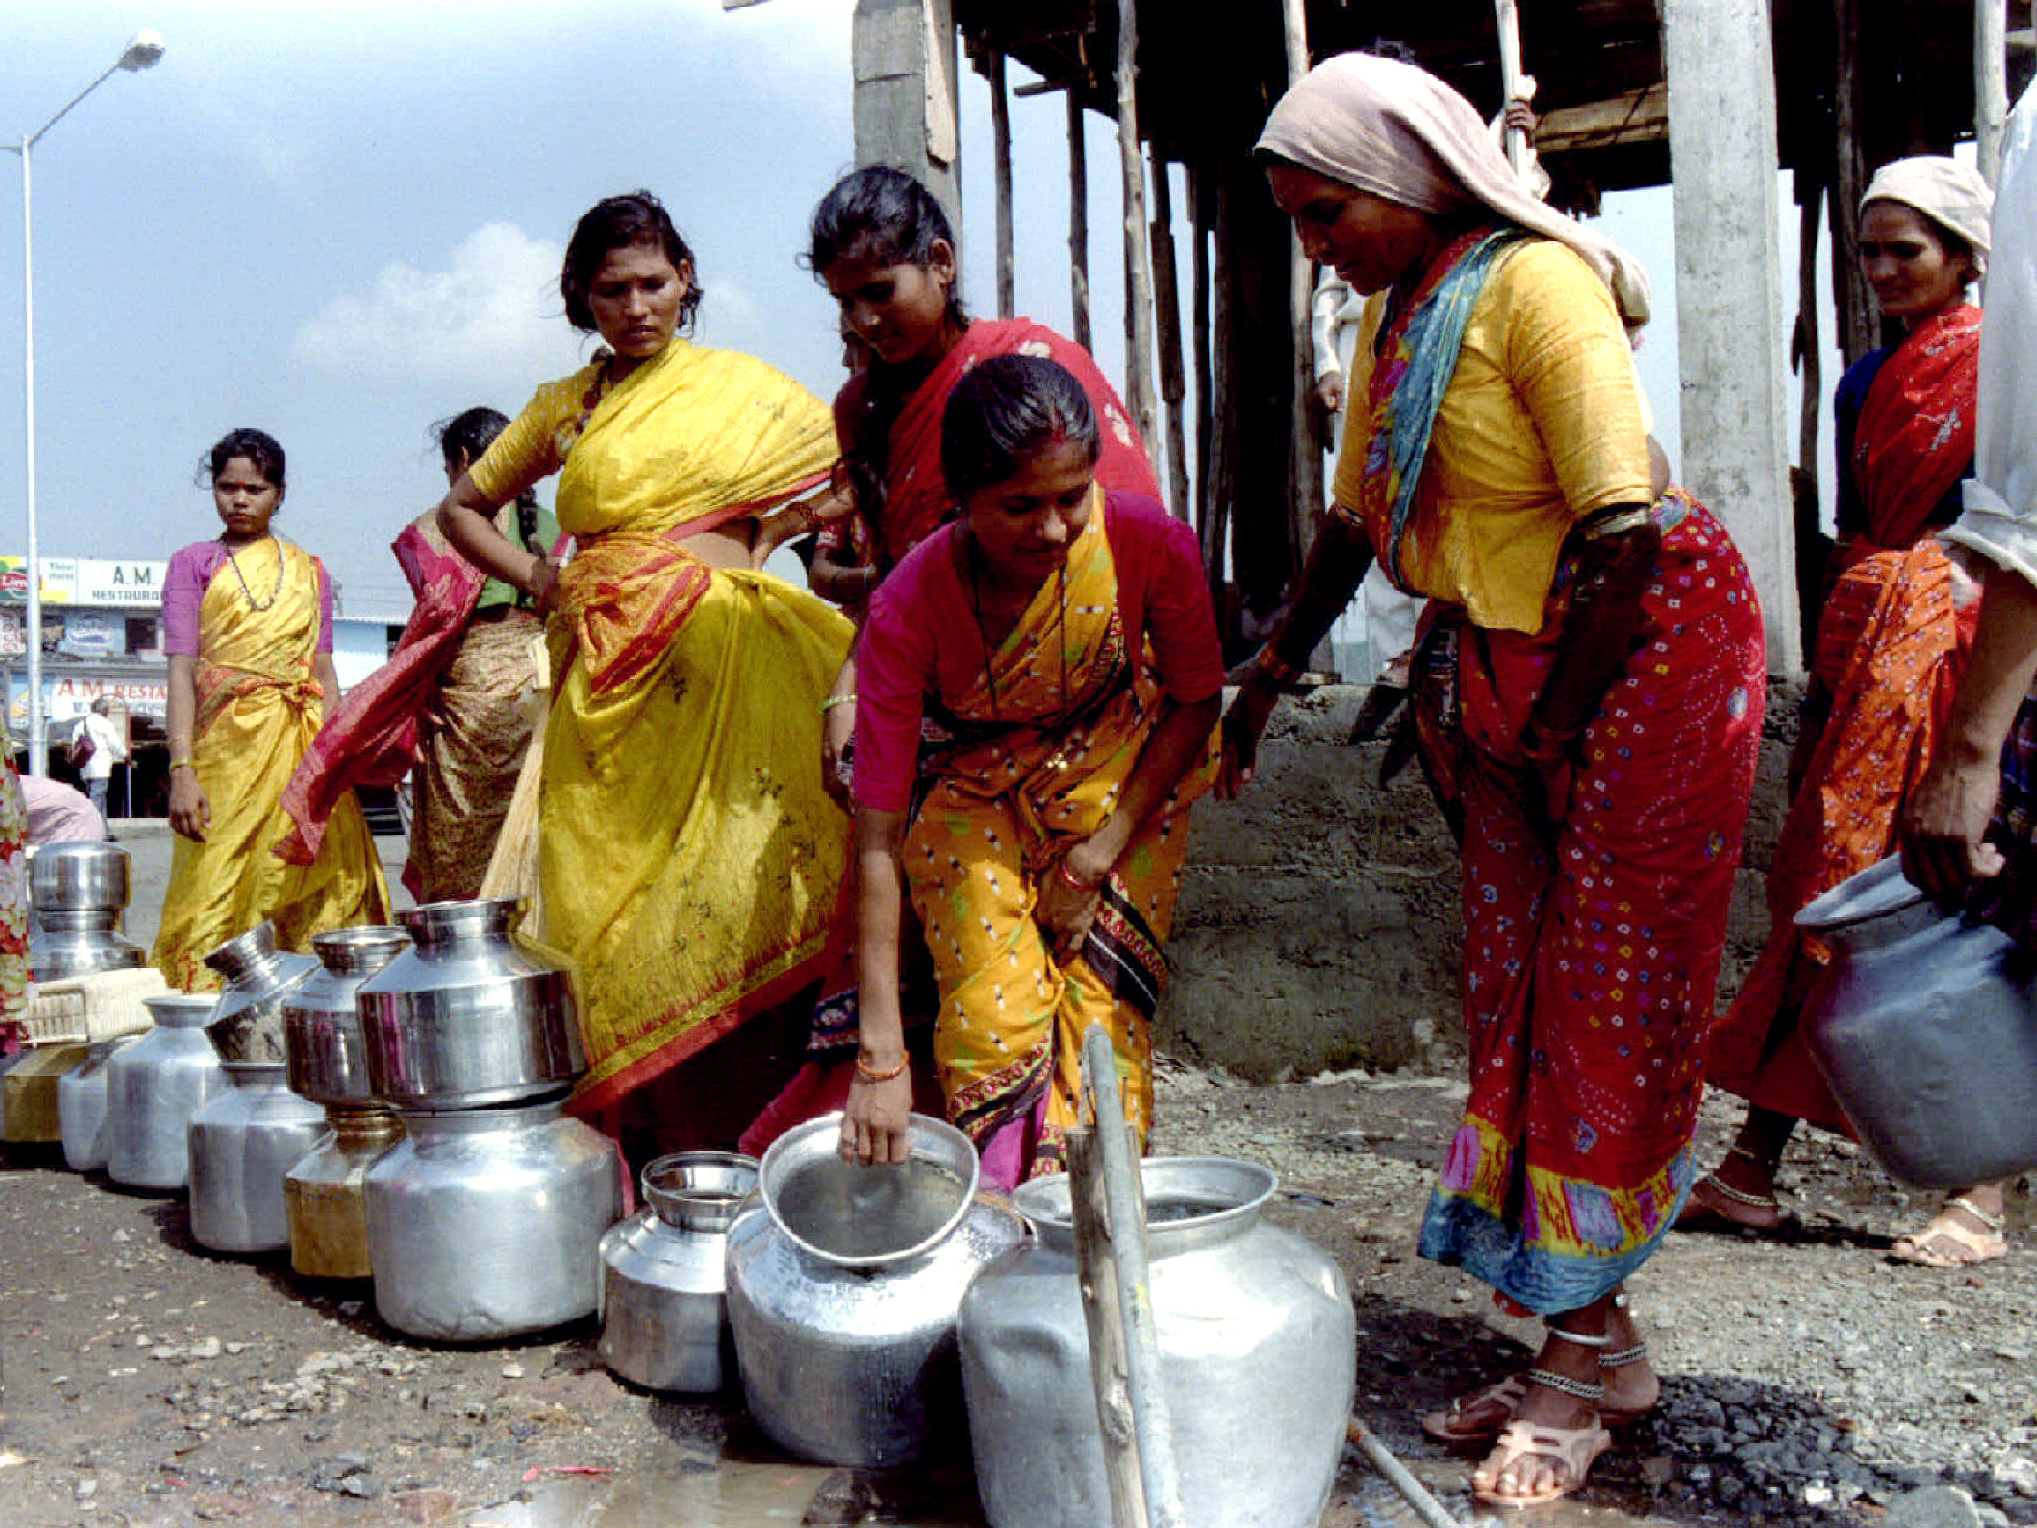 Women in Bombay line up vessels to fill water from a pipe June 23 as the delay in the monsoon has resulted in an acute shortage of water. The water supply in the city comes from nearby lakes which depend mainly on the four month monsoon rains between June and September.